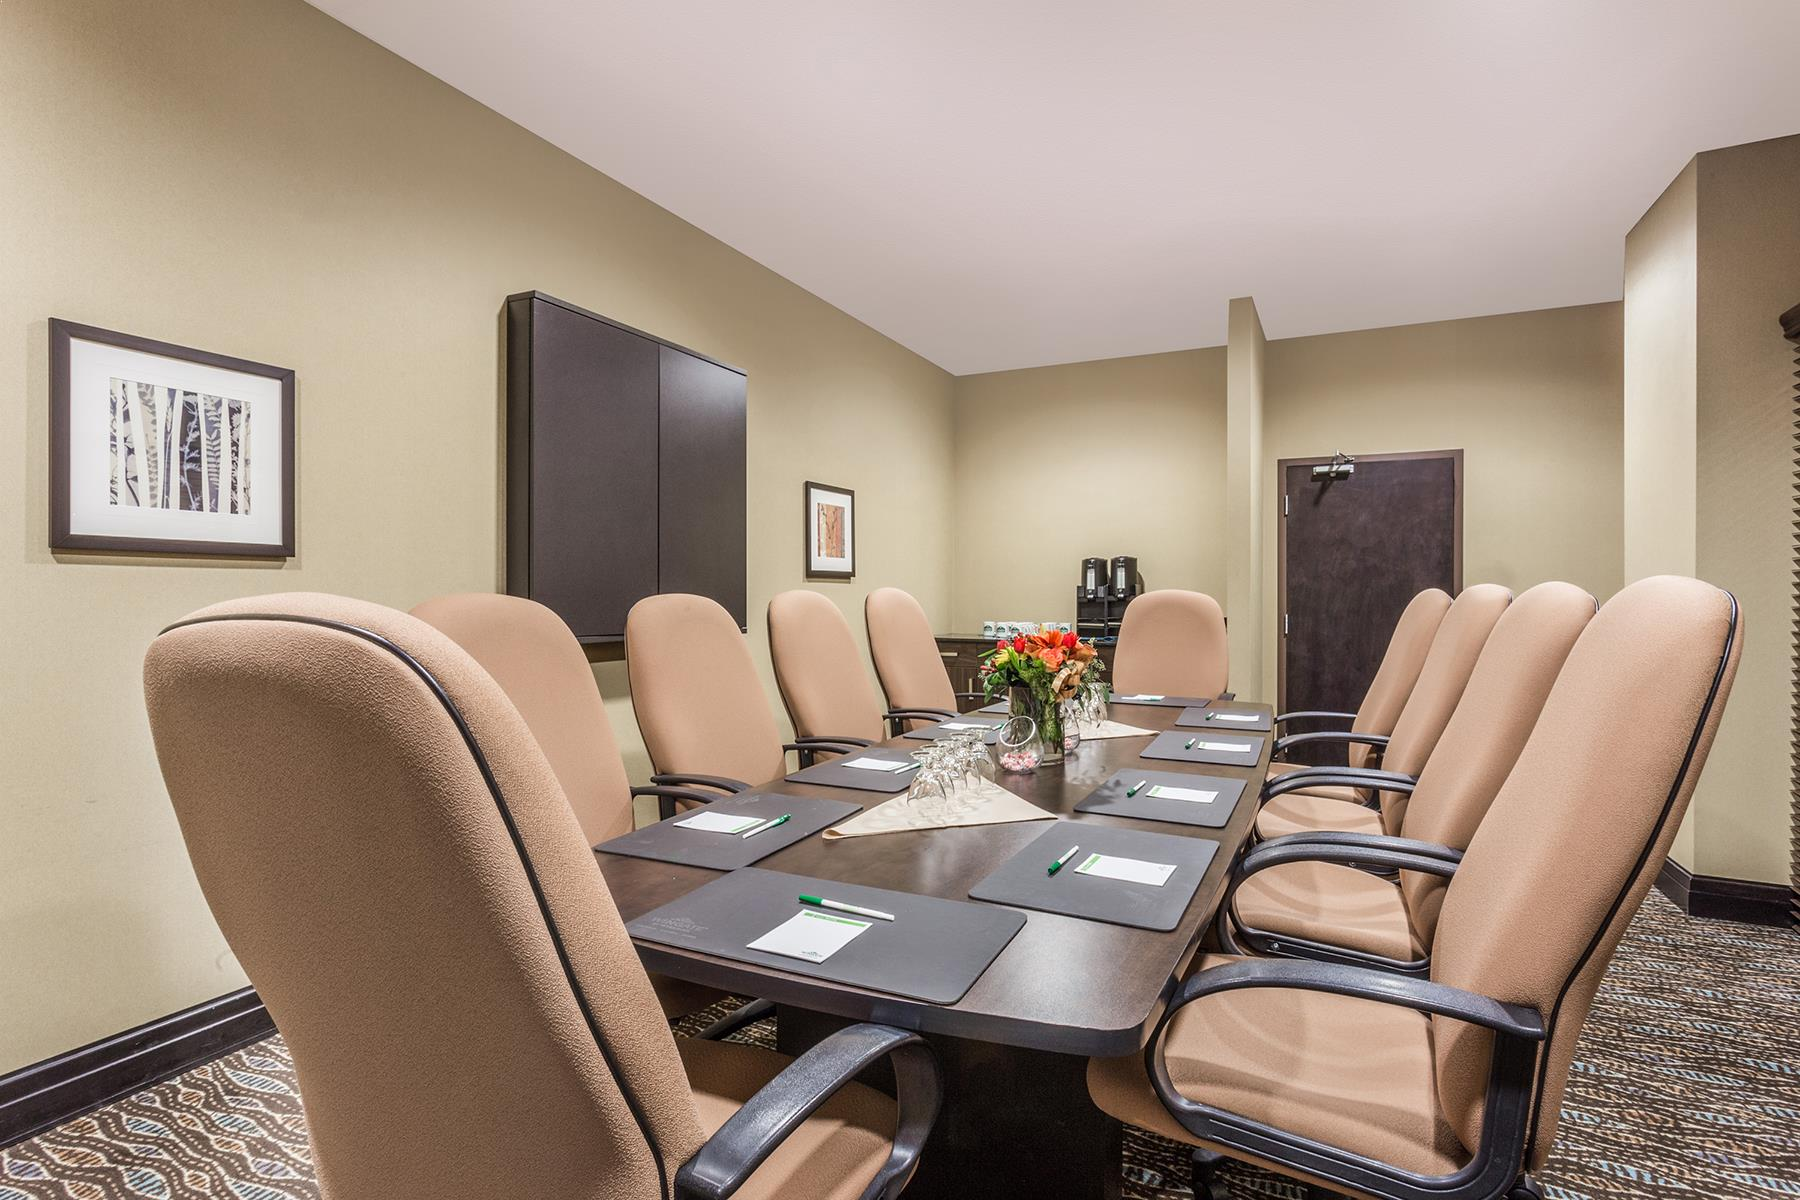 A spacious meeting space with a rectangular table in the middle at the Wingate by Wyndham Resort